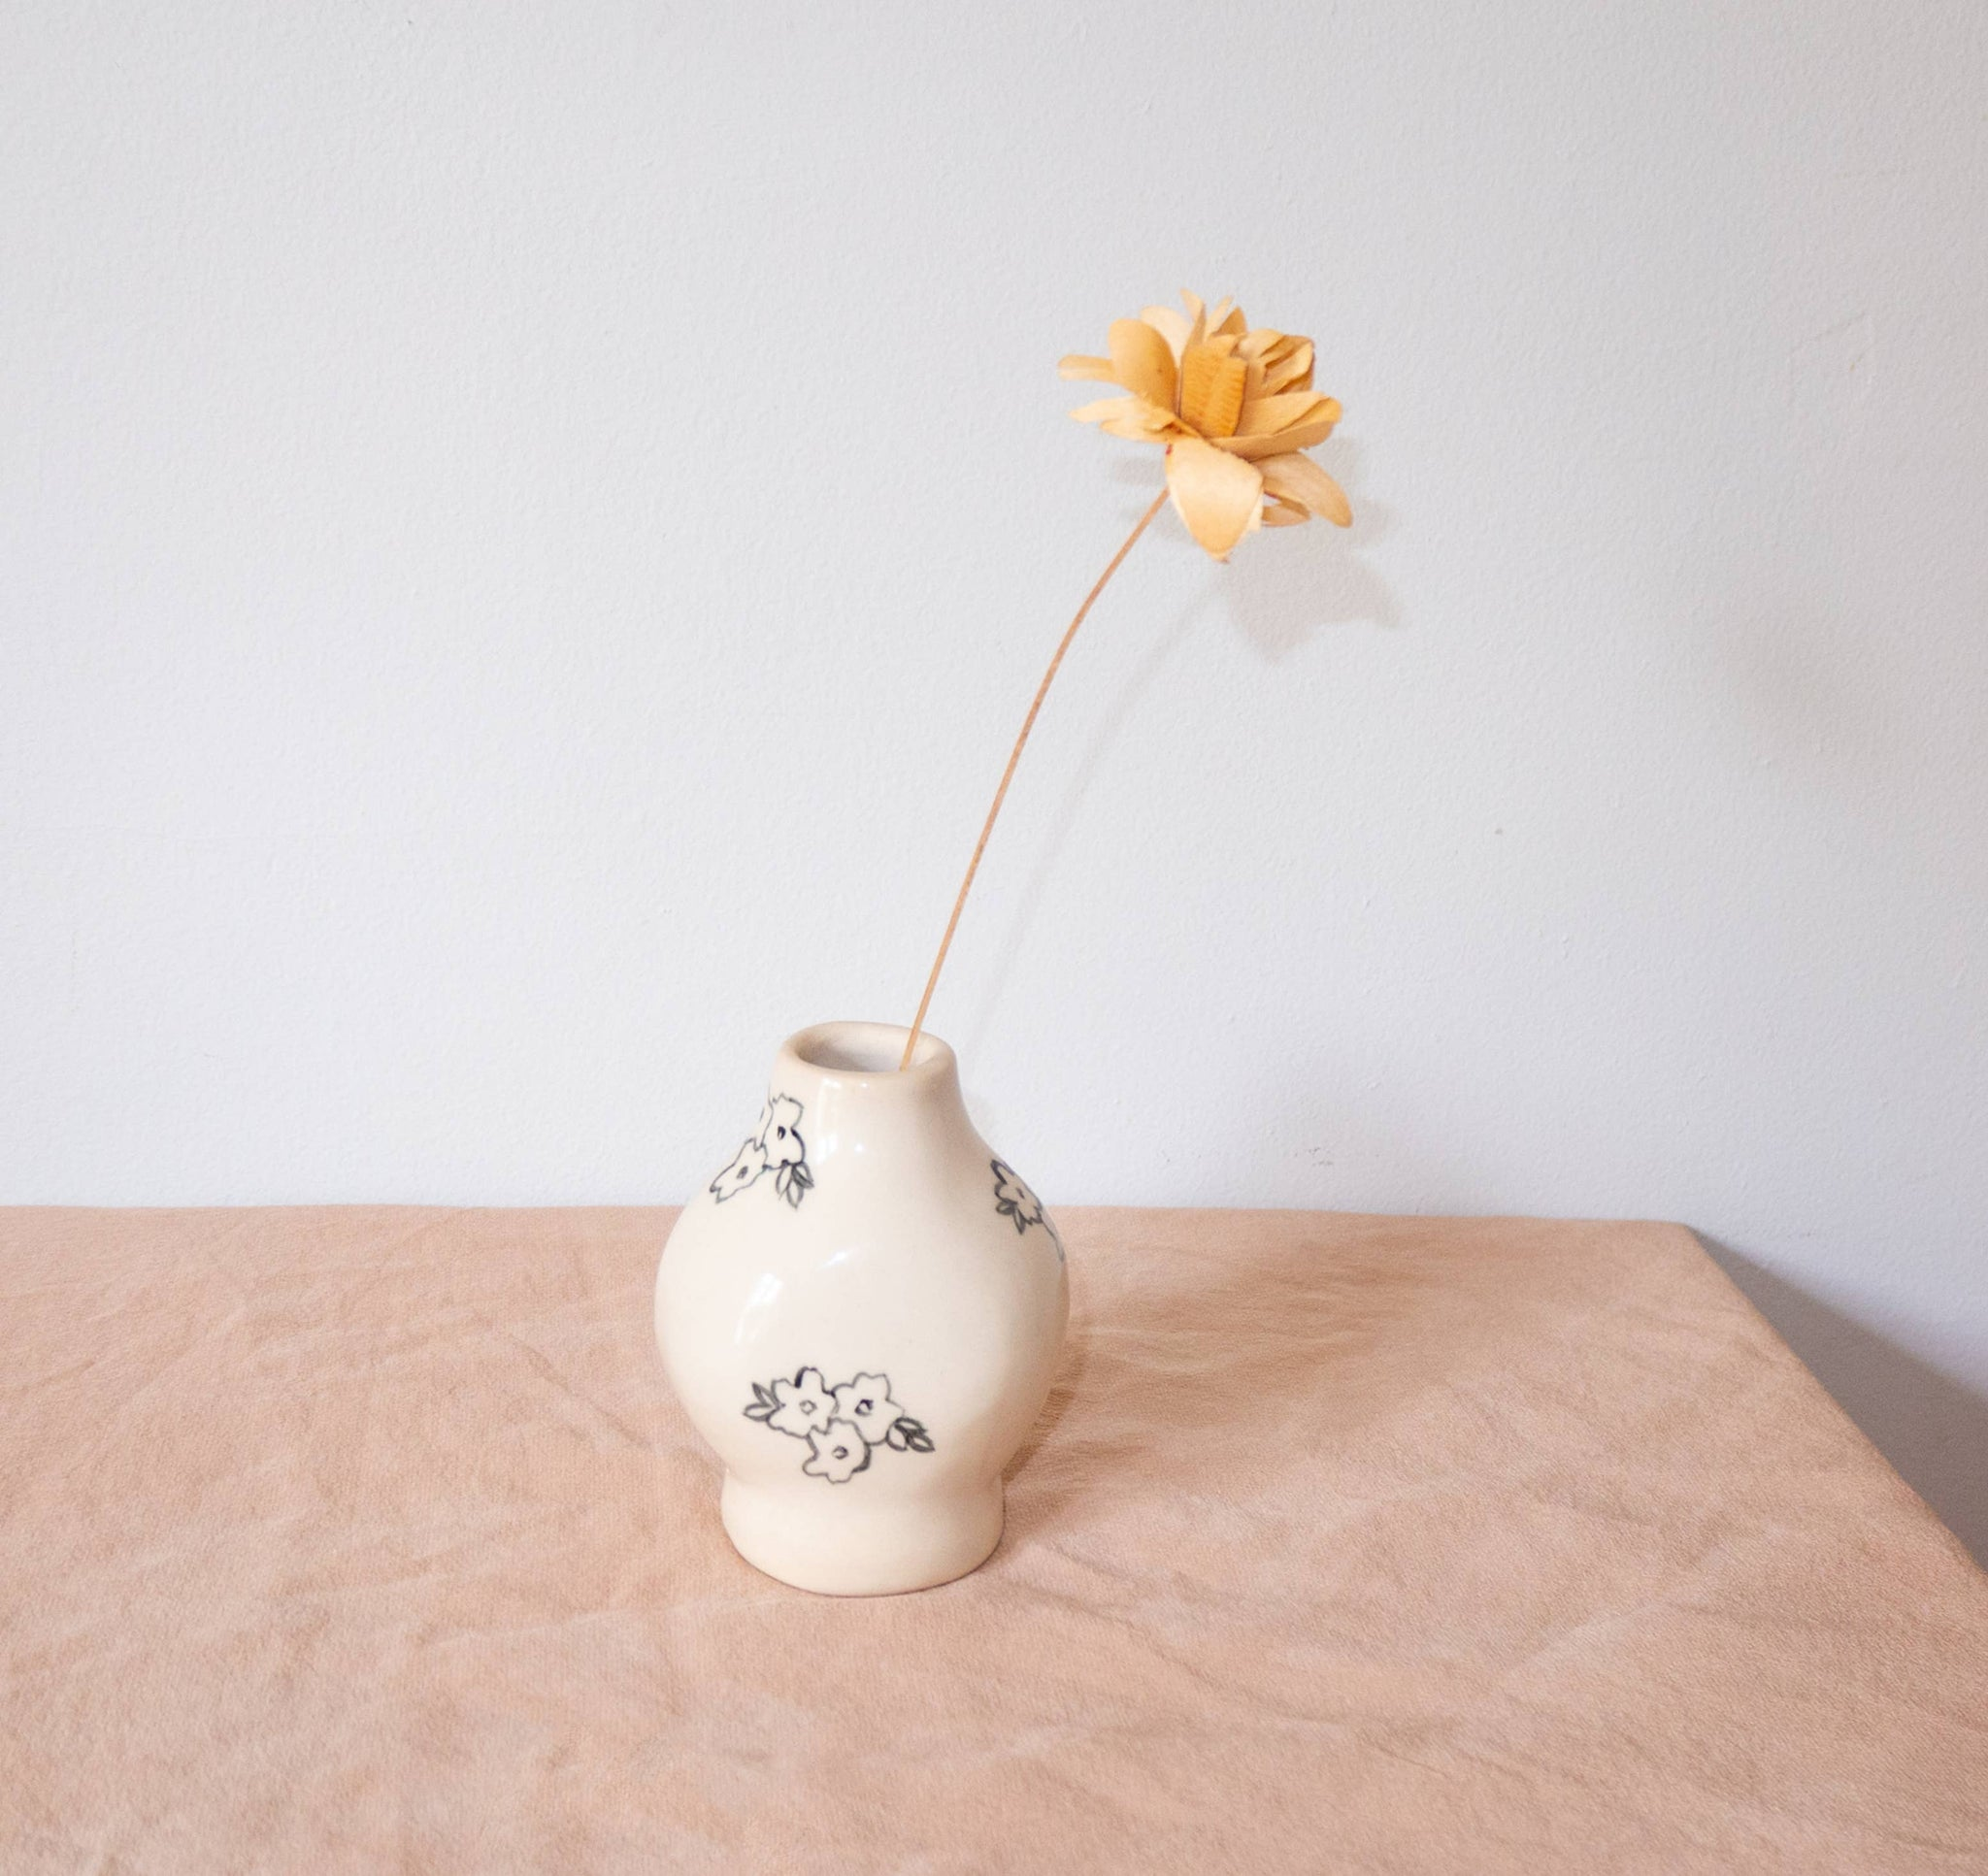 Erika Christine Ceramics - Bud Vase - Black and White